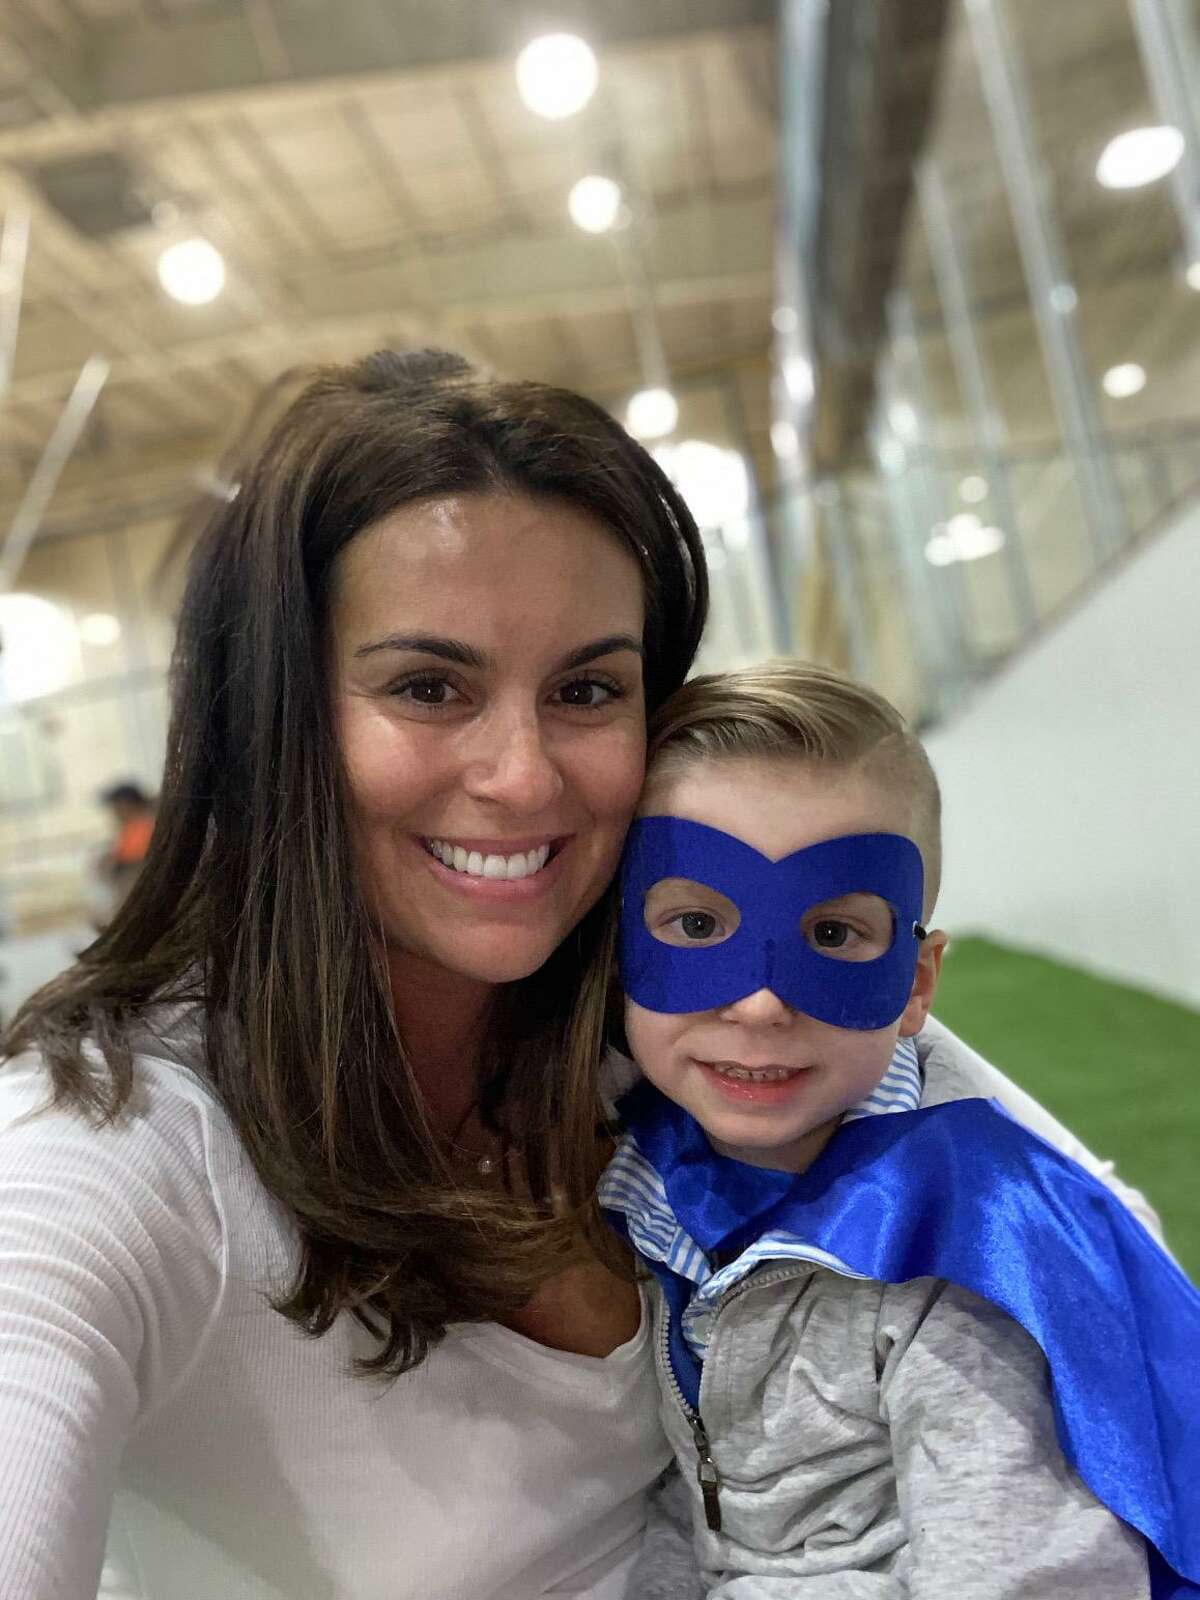 Natalie Avellone of New Canaan is sharing her son Carter's life with cerebral palsy through the Instagram page